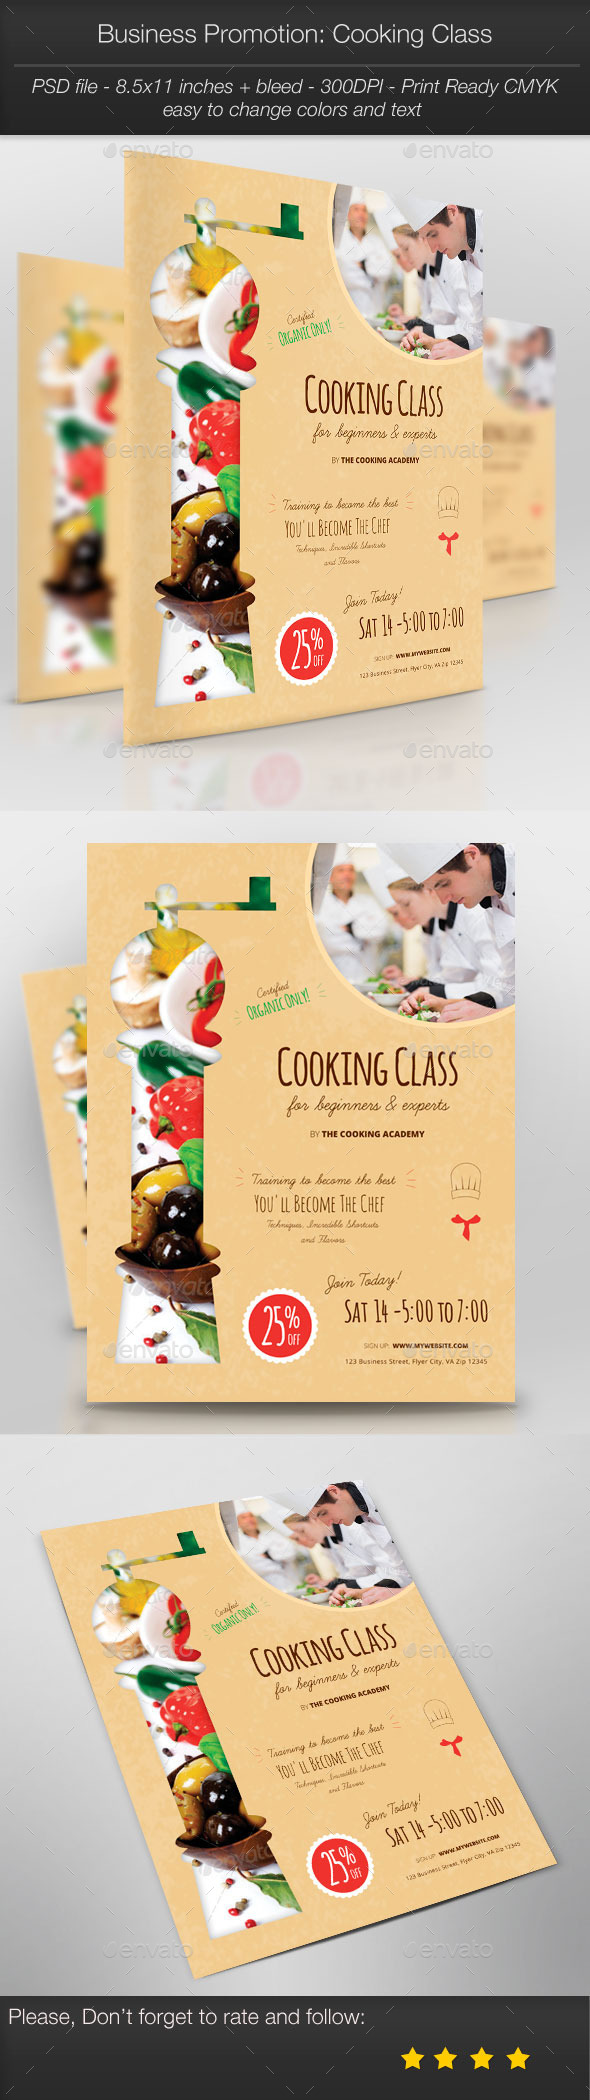 GraphicRiver Business Promotion Cooking Class 11026286